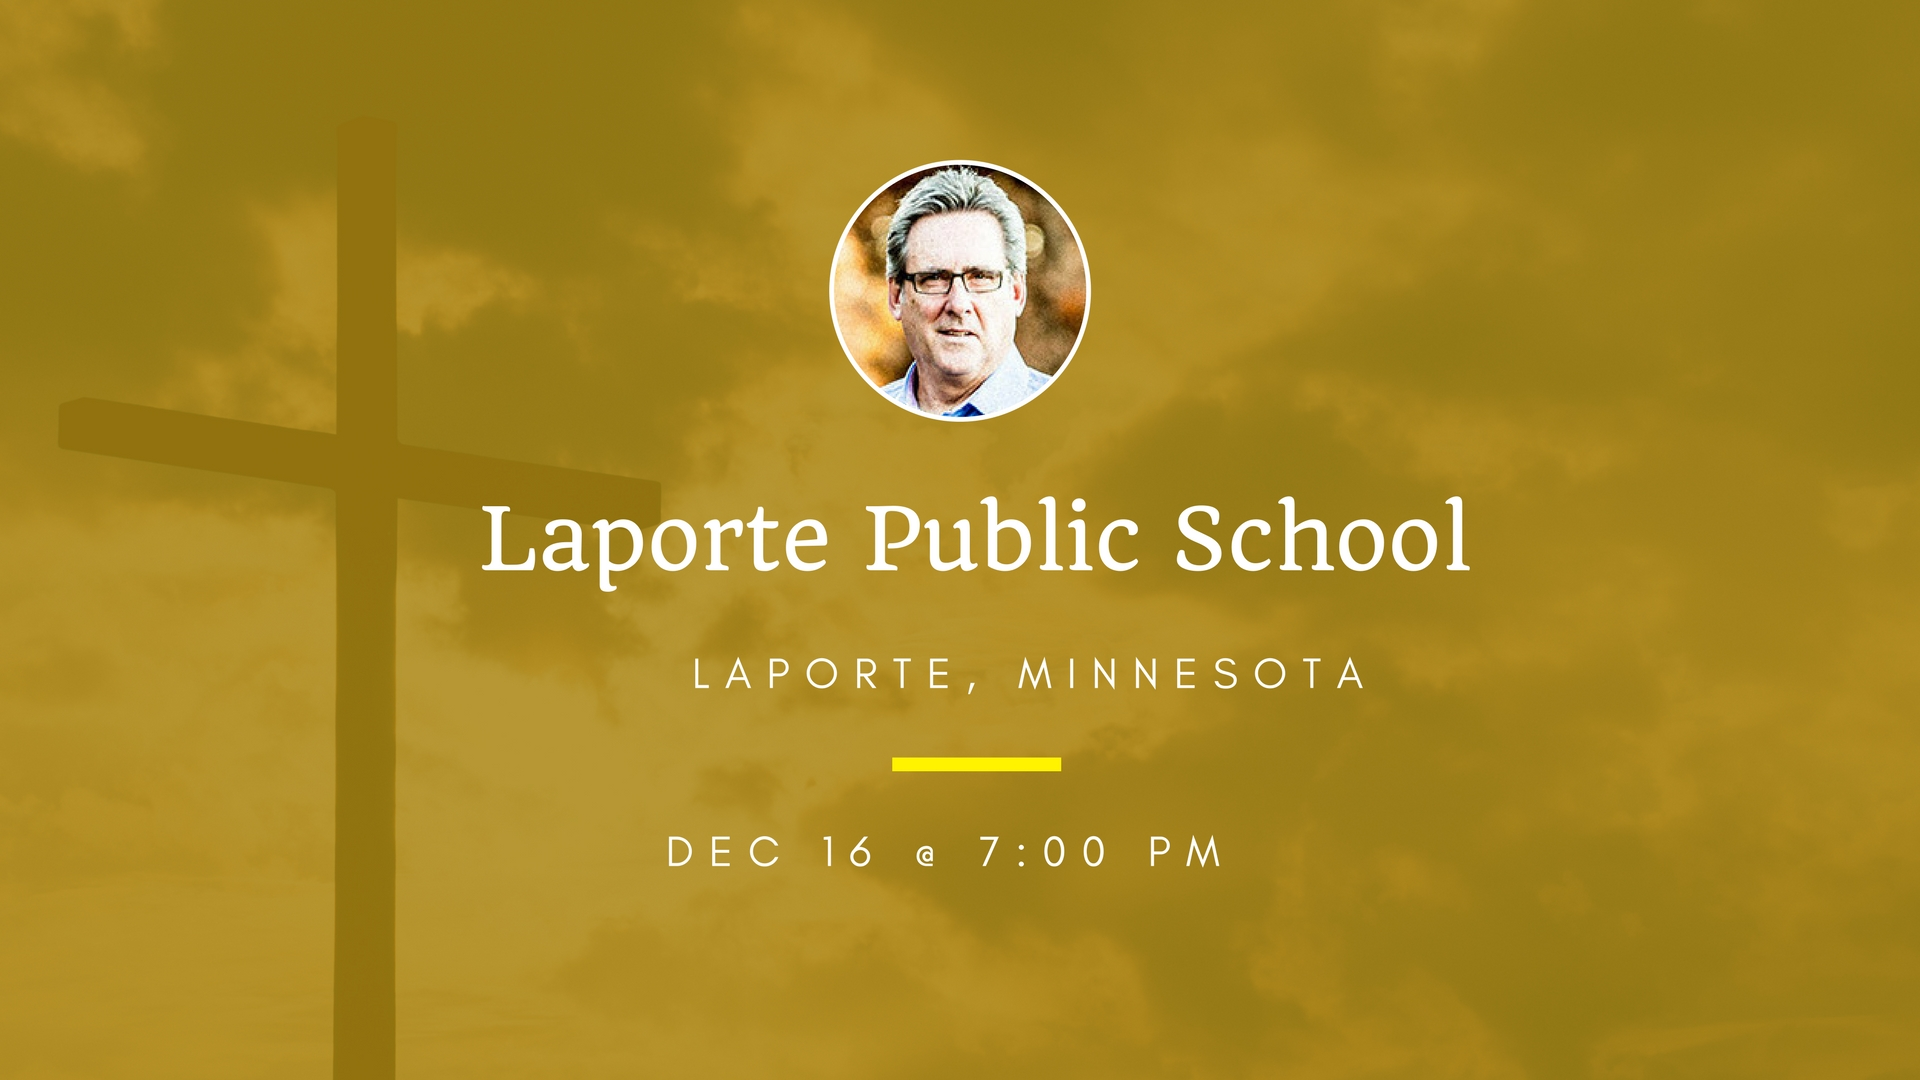 dallas holm at laporte public school in laporte minnesota